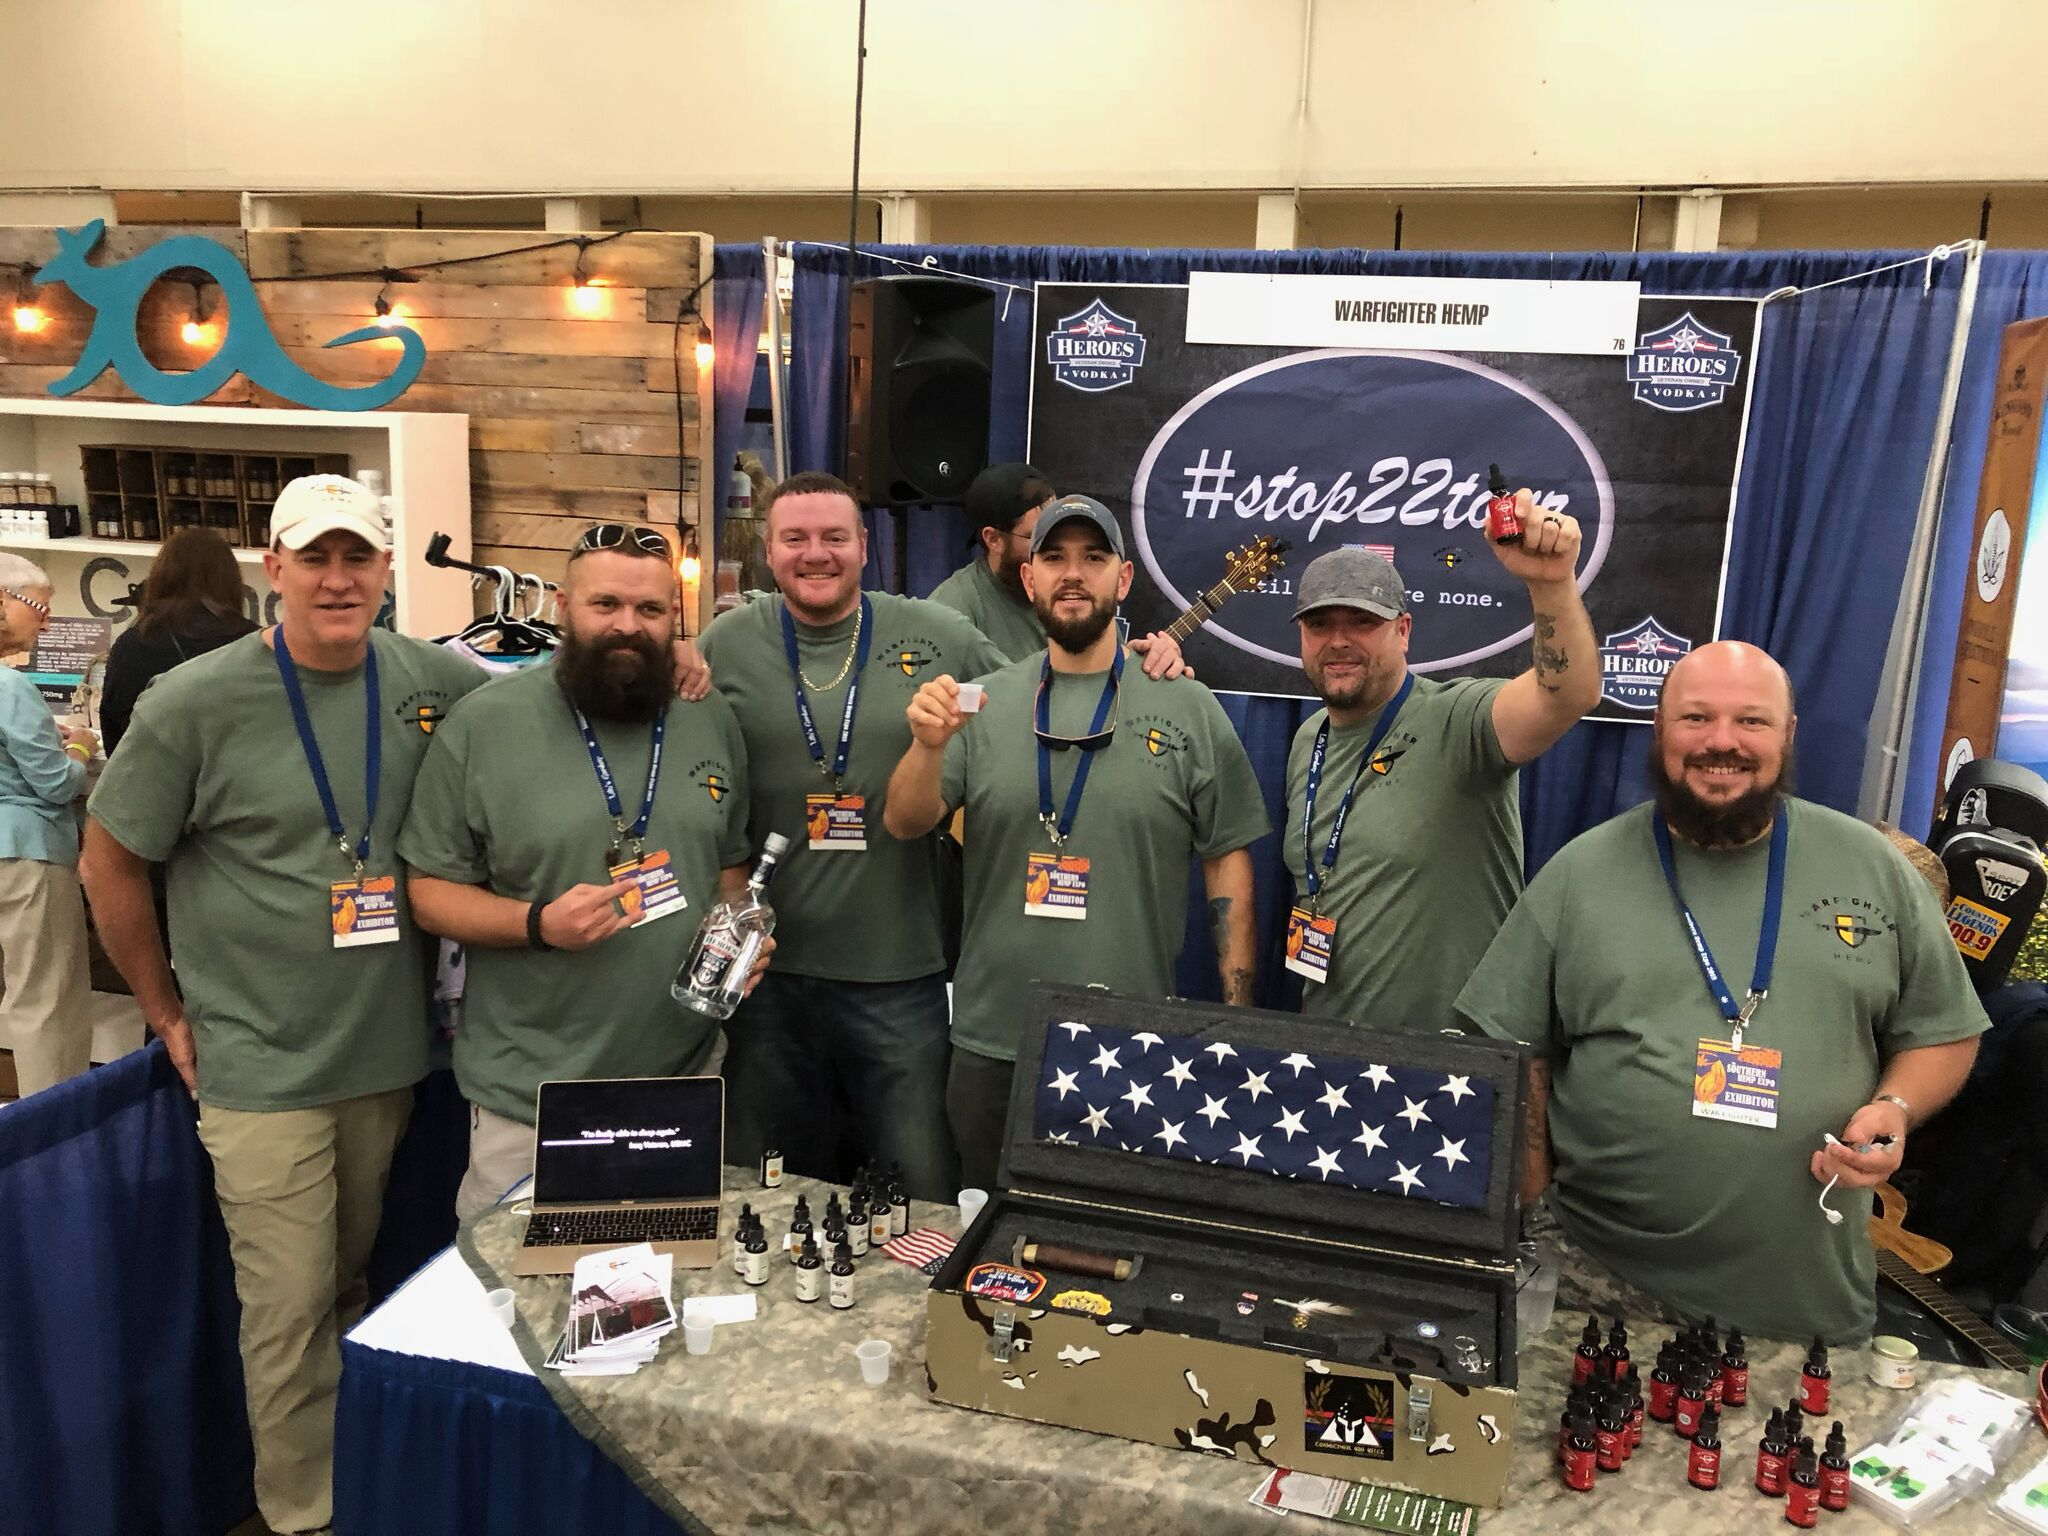 Warfighter Hemp: Hemp products for veterans, by veterans. The company provides a holistic and natural alternative for recovering United States veterans.